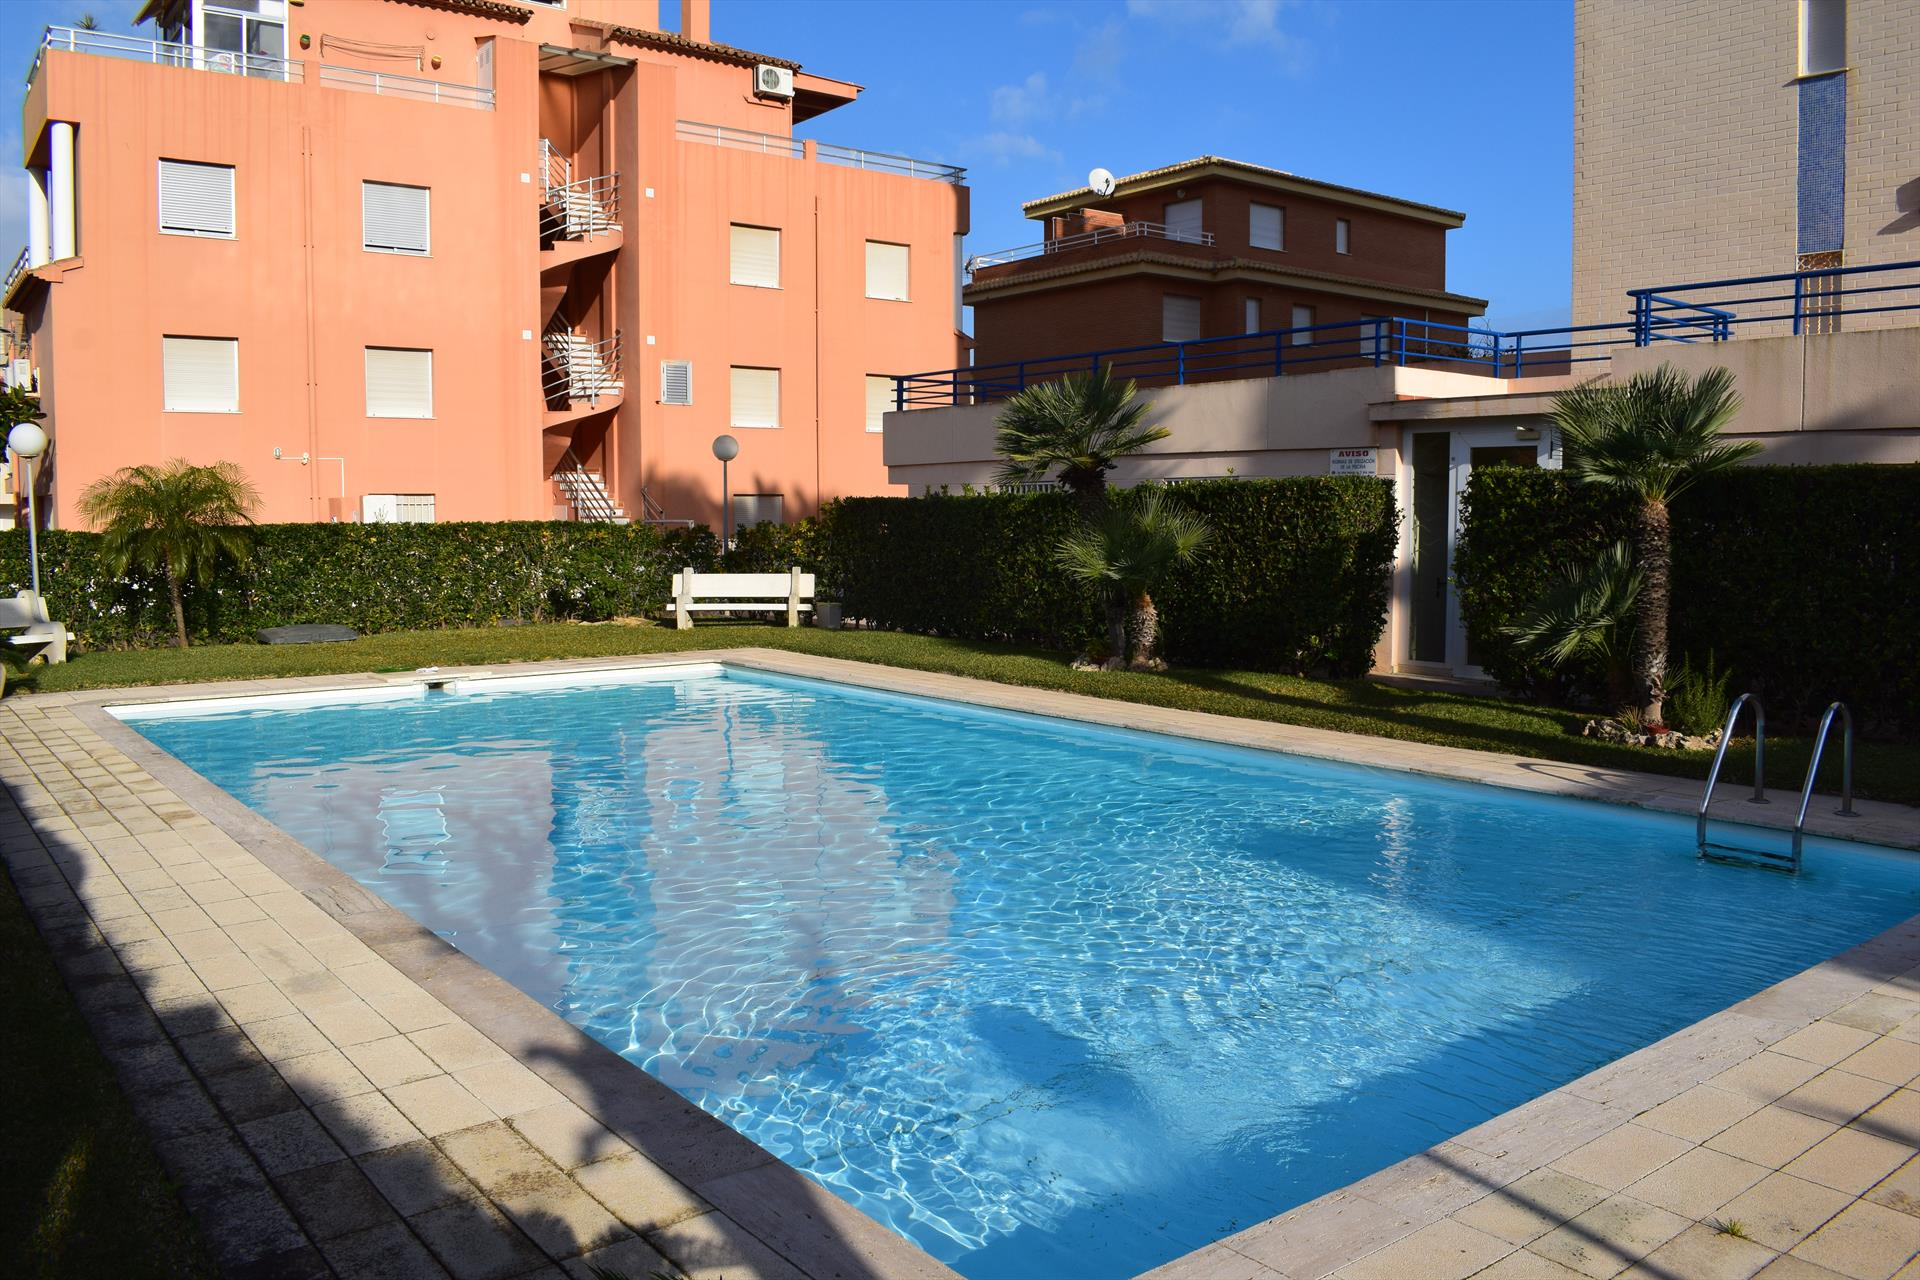 AP111  Piscina y Playa a 50 metros, Beautiful and cheerful apartment in Oliva, on the Costa Blanca, Spain  with communal pool for 4 persons.....